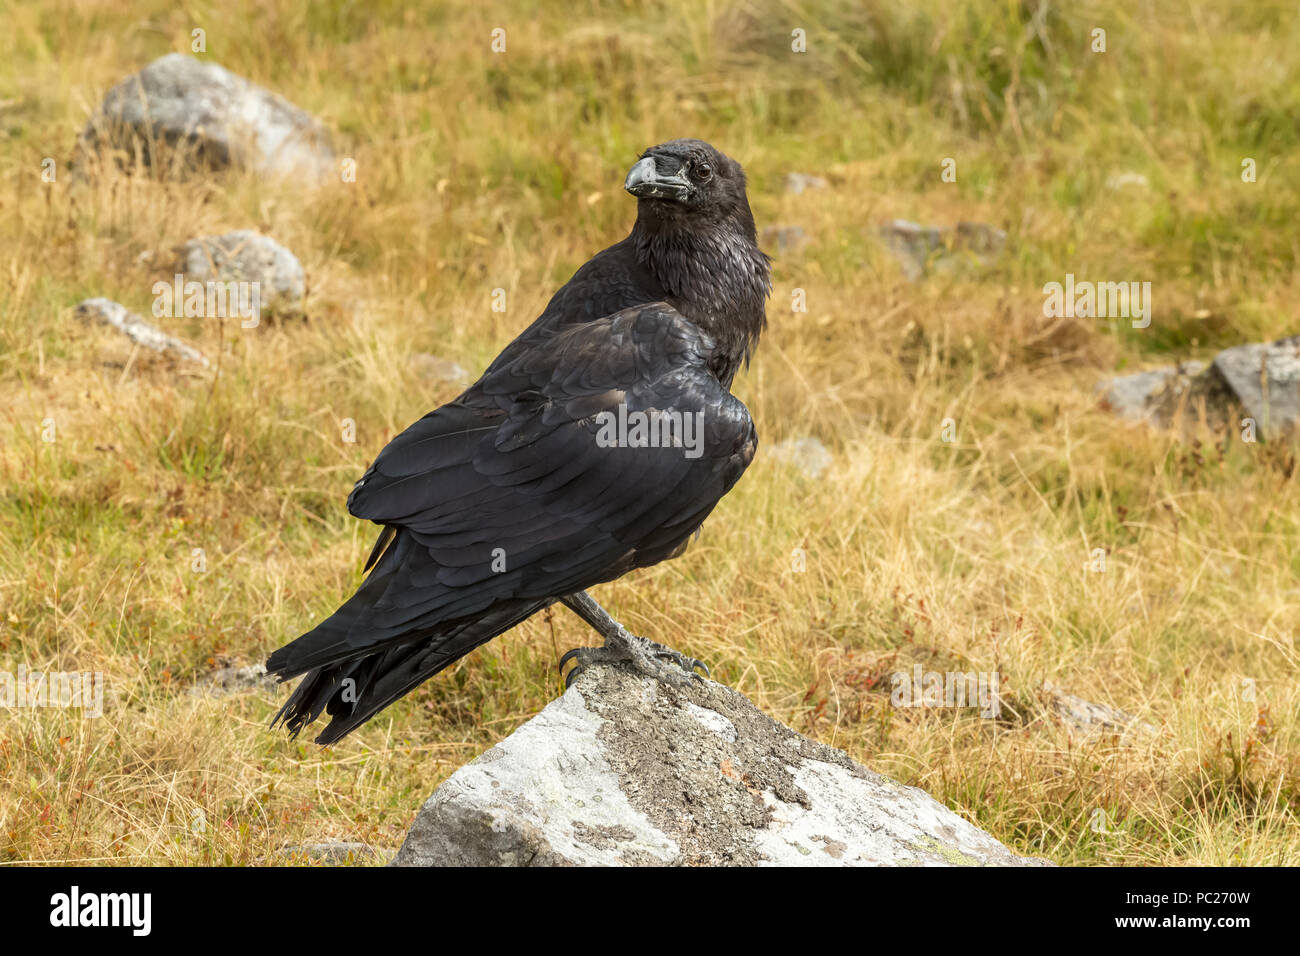 Raven, large black common or Northern Raven, perched on a lichen covered rock.  Scientific name: Corvus corax. Horizontal. - Stock Image